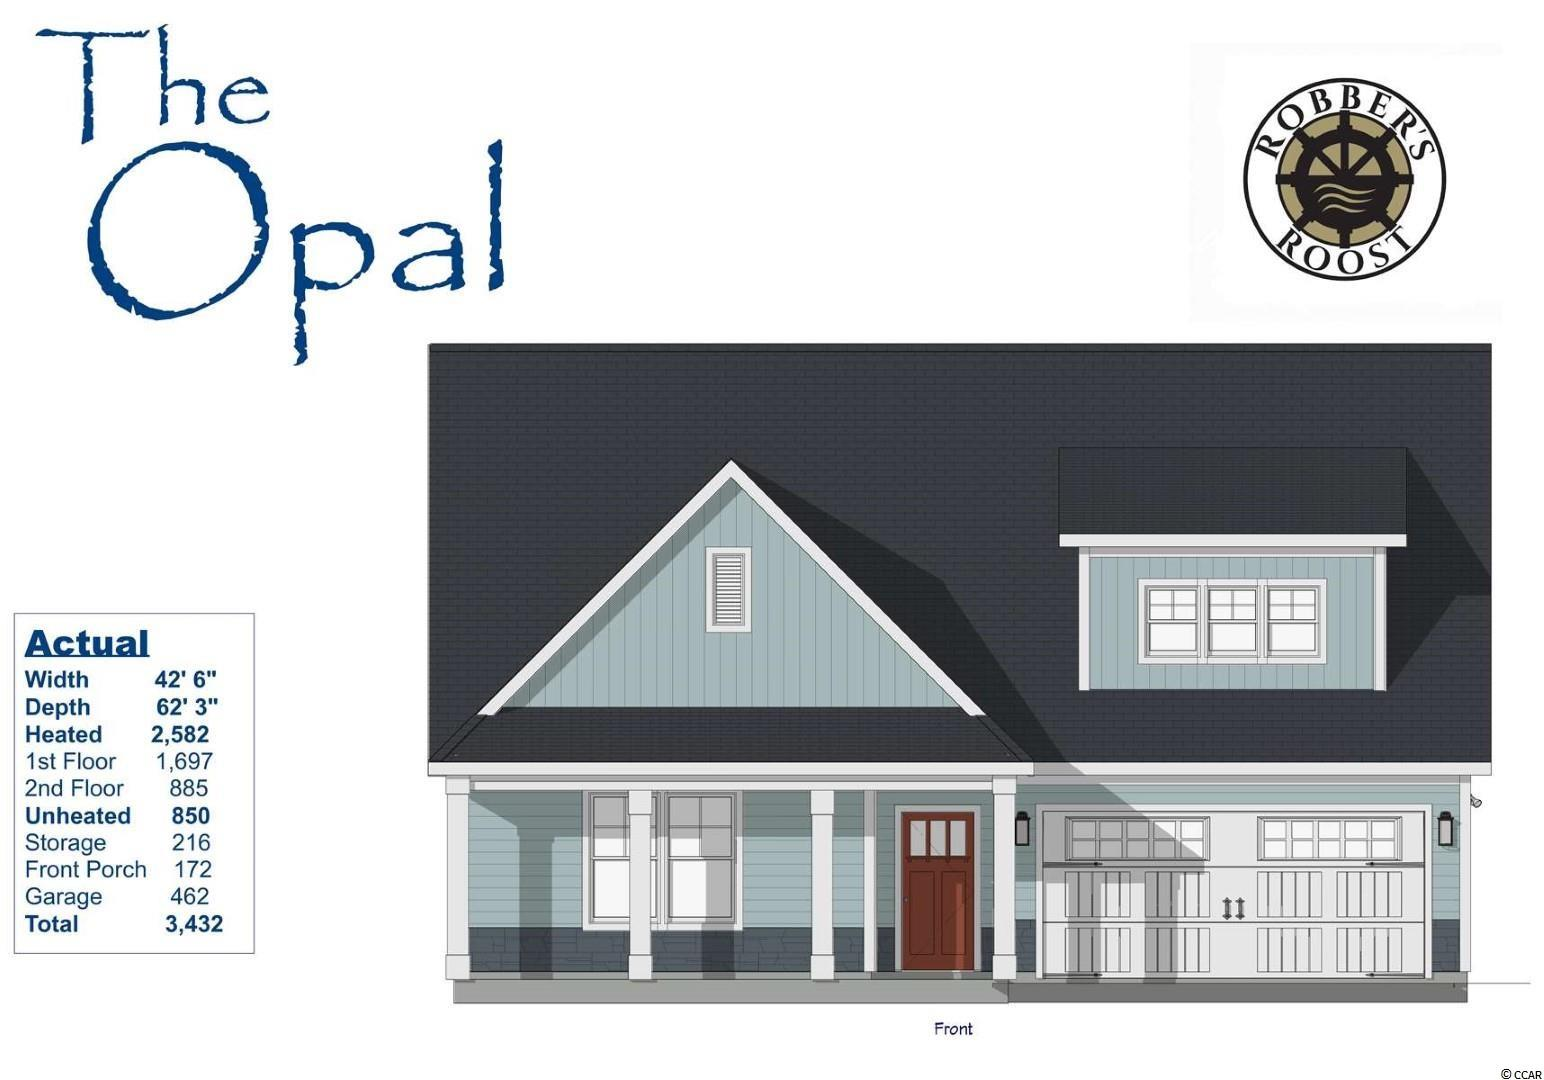 Our fantastic new Opal Model has so much to offer ~ This two story home features 5Br/3Ba with owners suite w/ full bath & large WIC and a 2nd bedroom (or office), a 2nd full bath, laundry room, large eat-in kitchen & living room on first floor & 3 bedrooms with a full bath on the 2nd floor, a covered front porch, back patio and a large 2 car garage! This open floor plan boasts a large living room, eat-in kitchen with free standing gas convection range, over-the-range sensor microwave, energy star dishwasher, granite countertops, garbage disposal, pantry, laundry room & rear patio.  Energy savings features include Low E windows, 14 Sear HVAC, Digital WiFi Programmable Thermostats, Tankless Gas Hot Water Heater & 200 Amp electrical service, security system with keyless entry.  Too much to mention so come see for yourself! From the time you step onto the quaint from porch & open the front door you'll see the quality of construction. 9' flat ceilings, wide plank restoration flooring, luxurious carpet in bedrooms.  Additionally, Robber's Roost at North Myrtle Beach is a natural gas community east of Hwy 17 with a community pool coming for the 2021 swimming season & is located within walking, bicycle or golf cart distance to Tilghman Beach, the beautiful Atlantic Ocean w/ 60 miles of white sandy beaches and is close to Coastal North Town Center (shopping, dining, beauty, pets), Shag dance capital Main St., golf, boating/fishing in the ICW, entertainment and all the amenities of living in Coastal South Carolina. Whether a primary residence or your vacation get-a-way, Don't Miss ~ come live the dream!  (*Many new plans to choose from!)